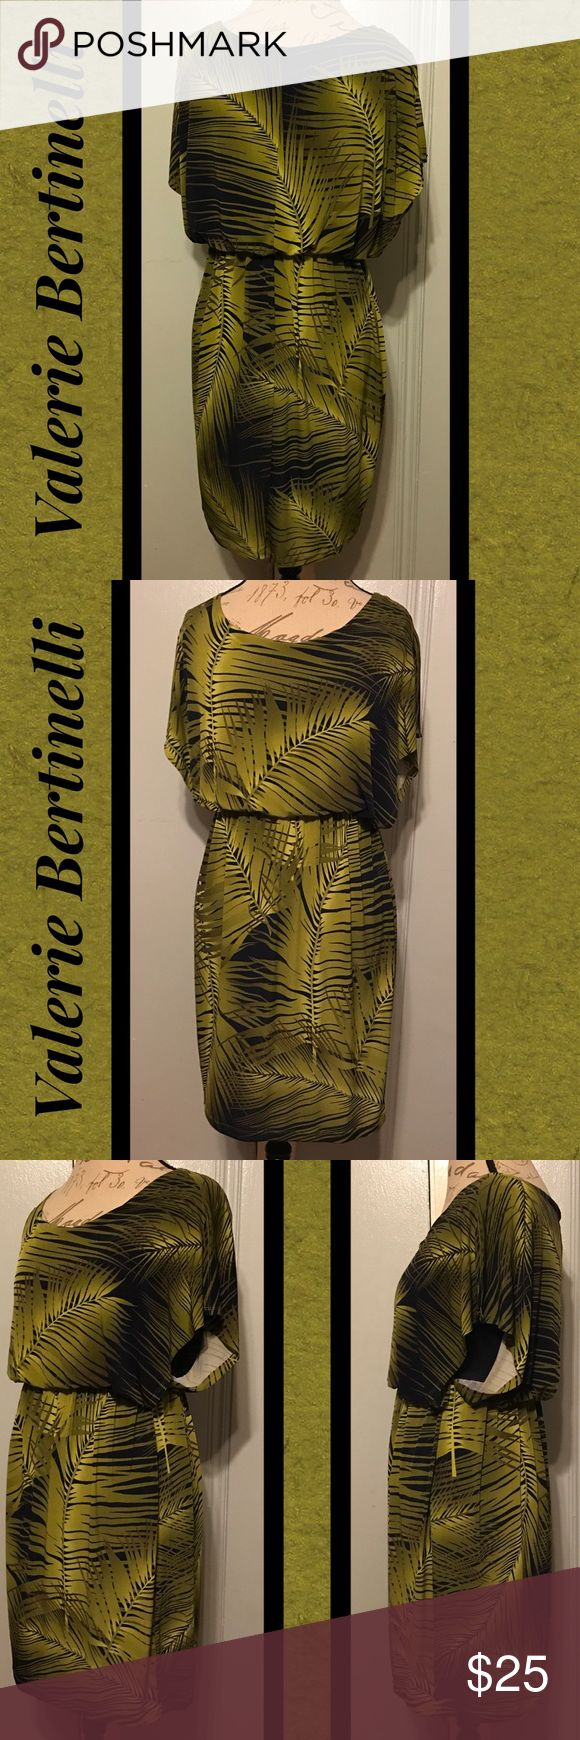 """VALERIE BERTANELLI Perfect Olive/Black Palm Dress SIZE 6. 33"""" Length. 26""""-36"""" Waist. 36"""" Bust. Olive Green & Black Colors. Palm Leaf Design. Fitted Black Under Tank. Elastic Waist. Inner Lining Has Small Run-c pics. Otherwise Perfect Condition. Valerie Bertanelli Dresses Midi"""